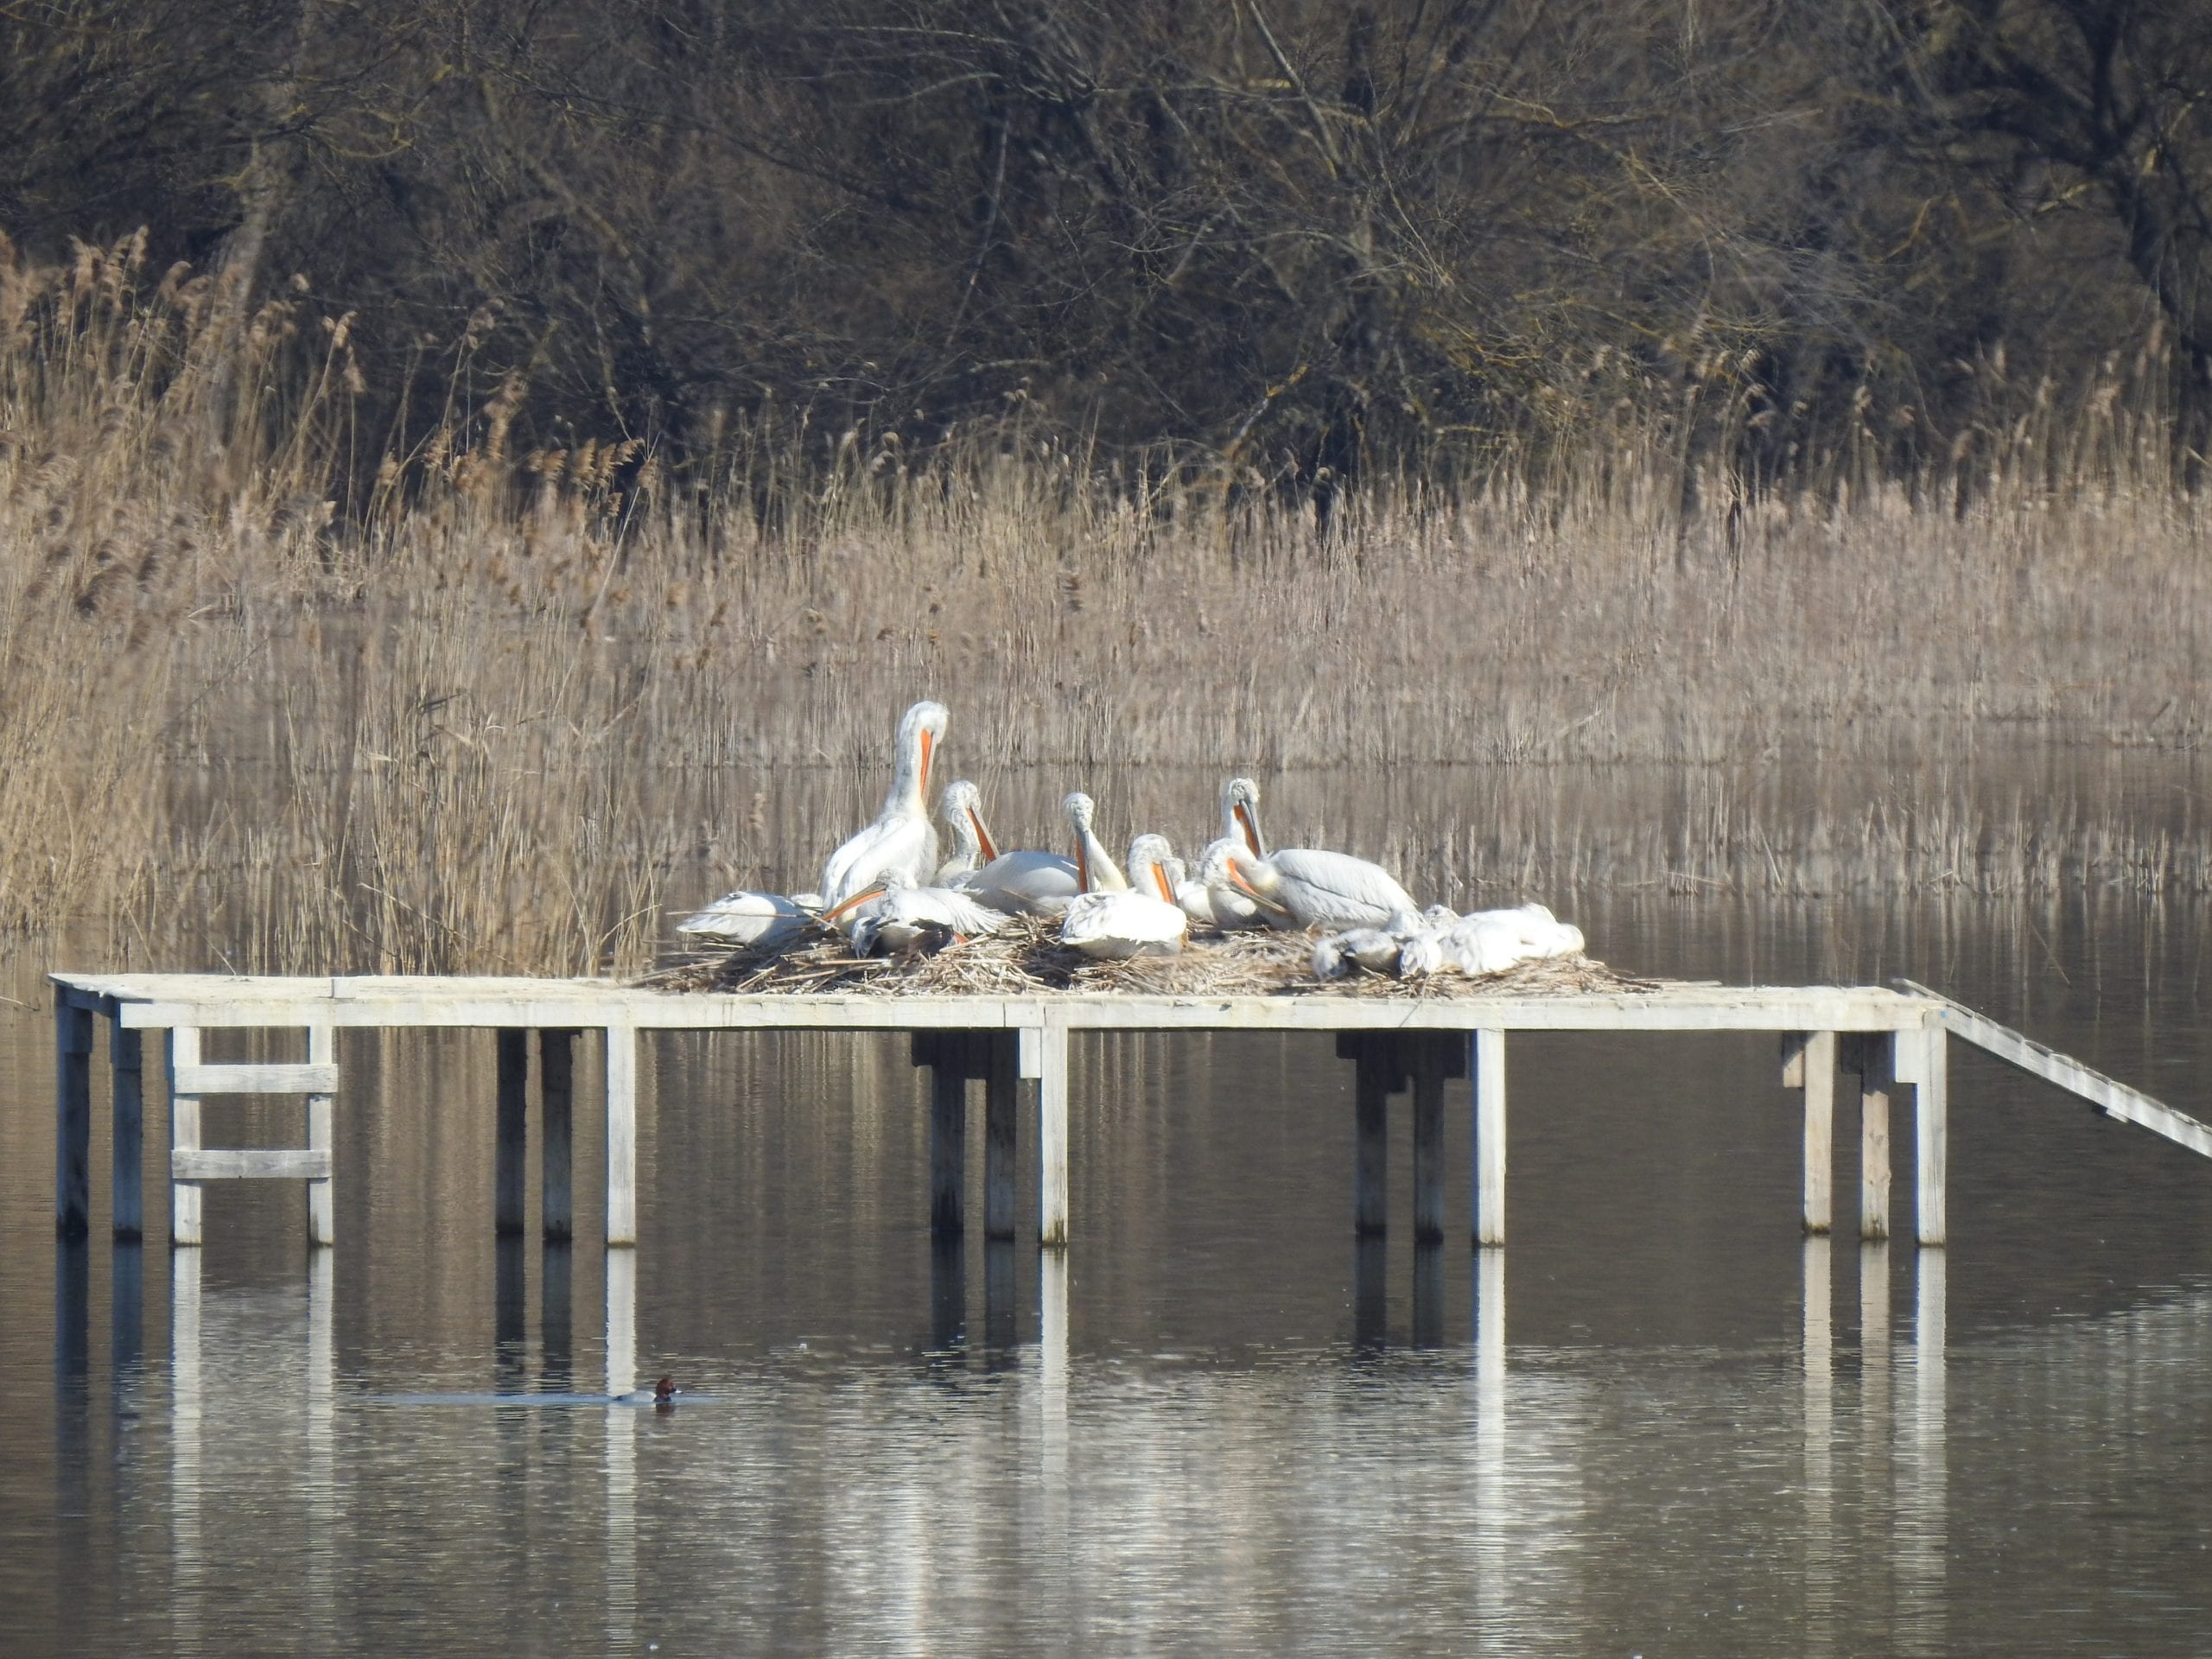 A record number of Dalmatian pelicans nest in the Peschina swamp